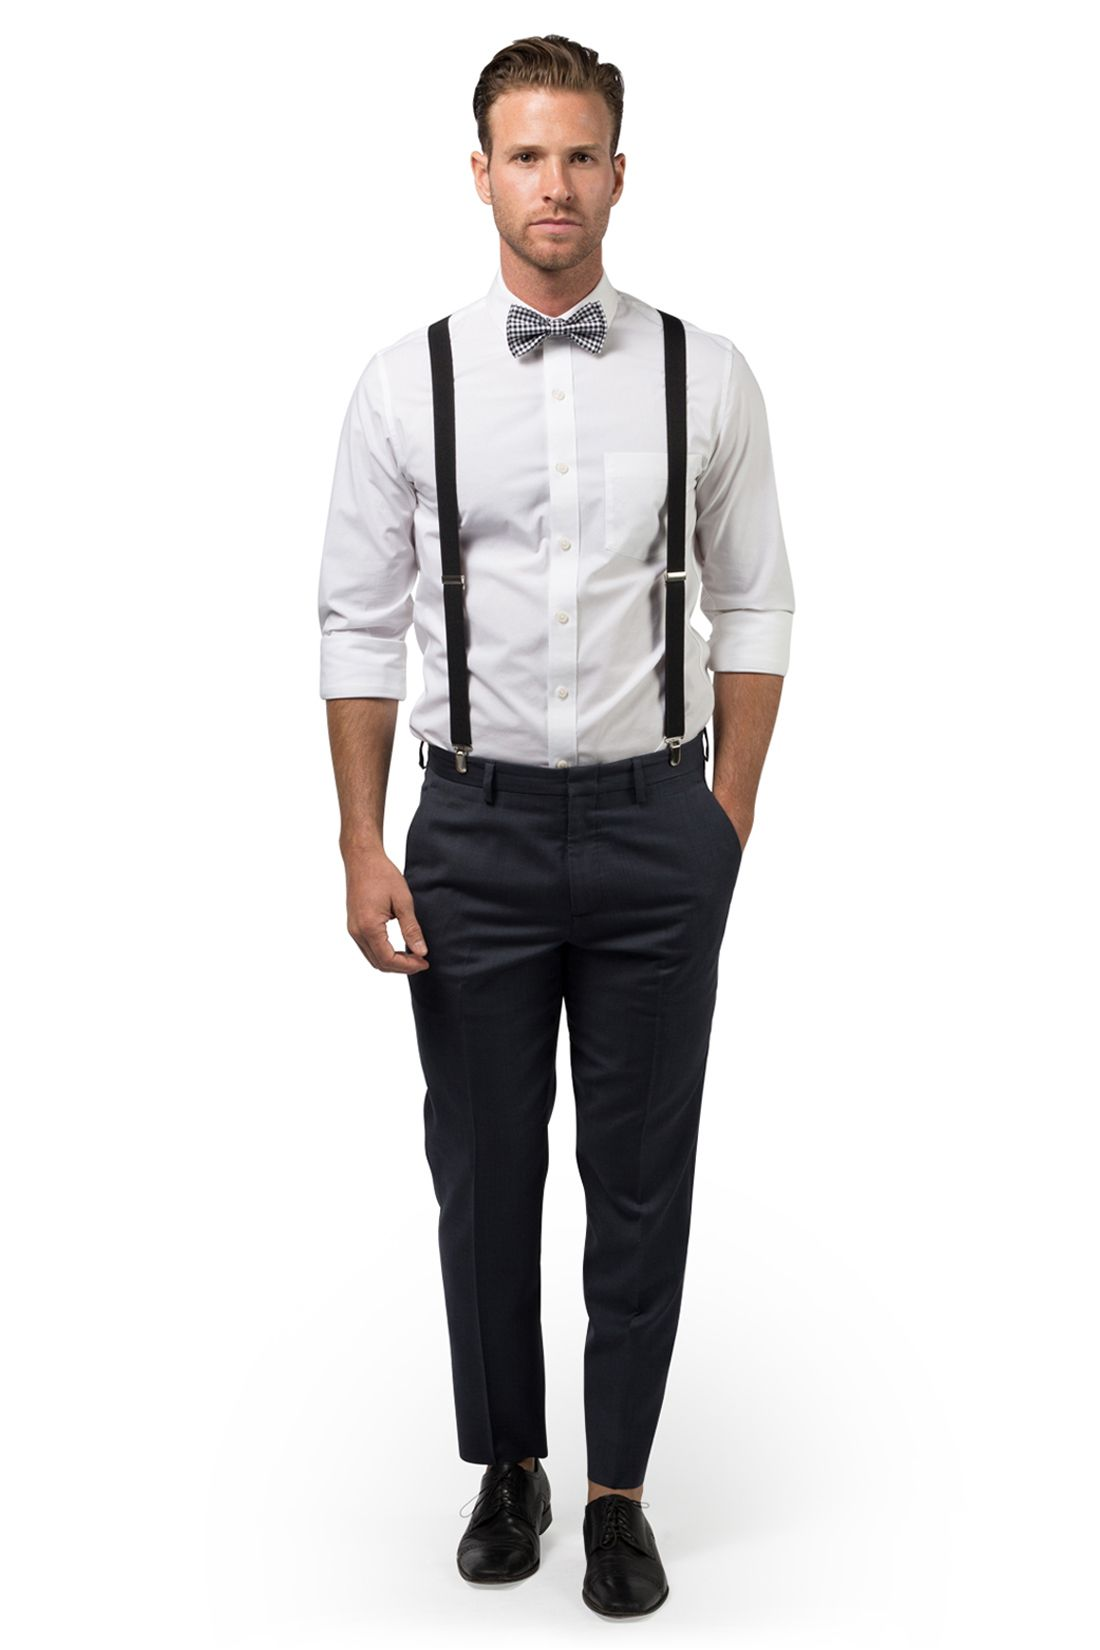 New Fashion Adult Polka Dot Suspender Bow-Tie Combo Set Tuxedo Wedding Suit